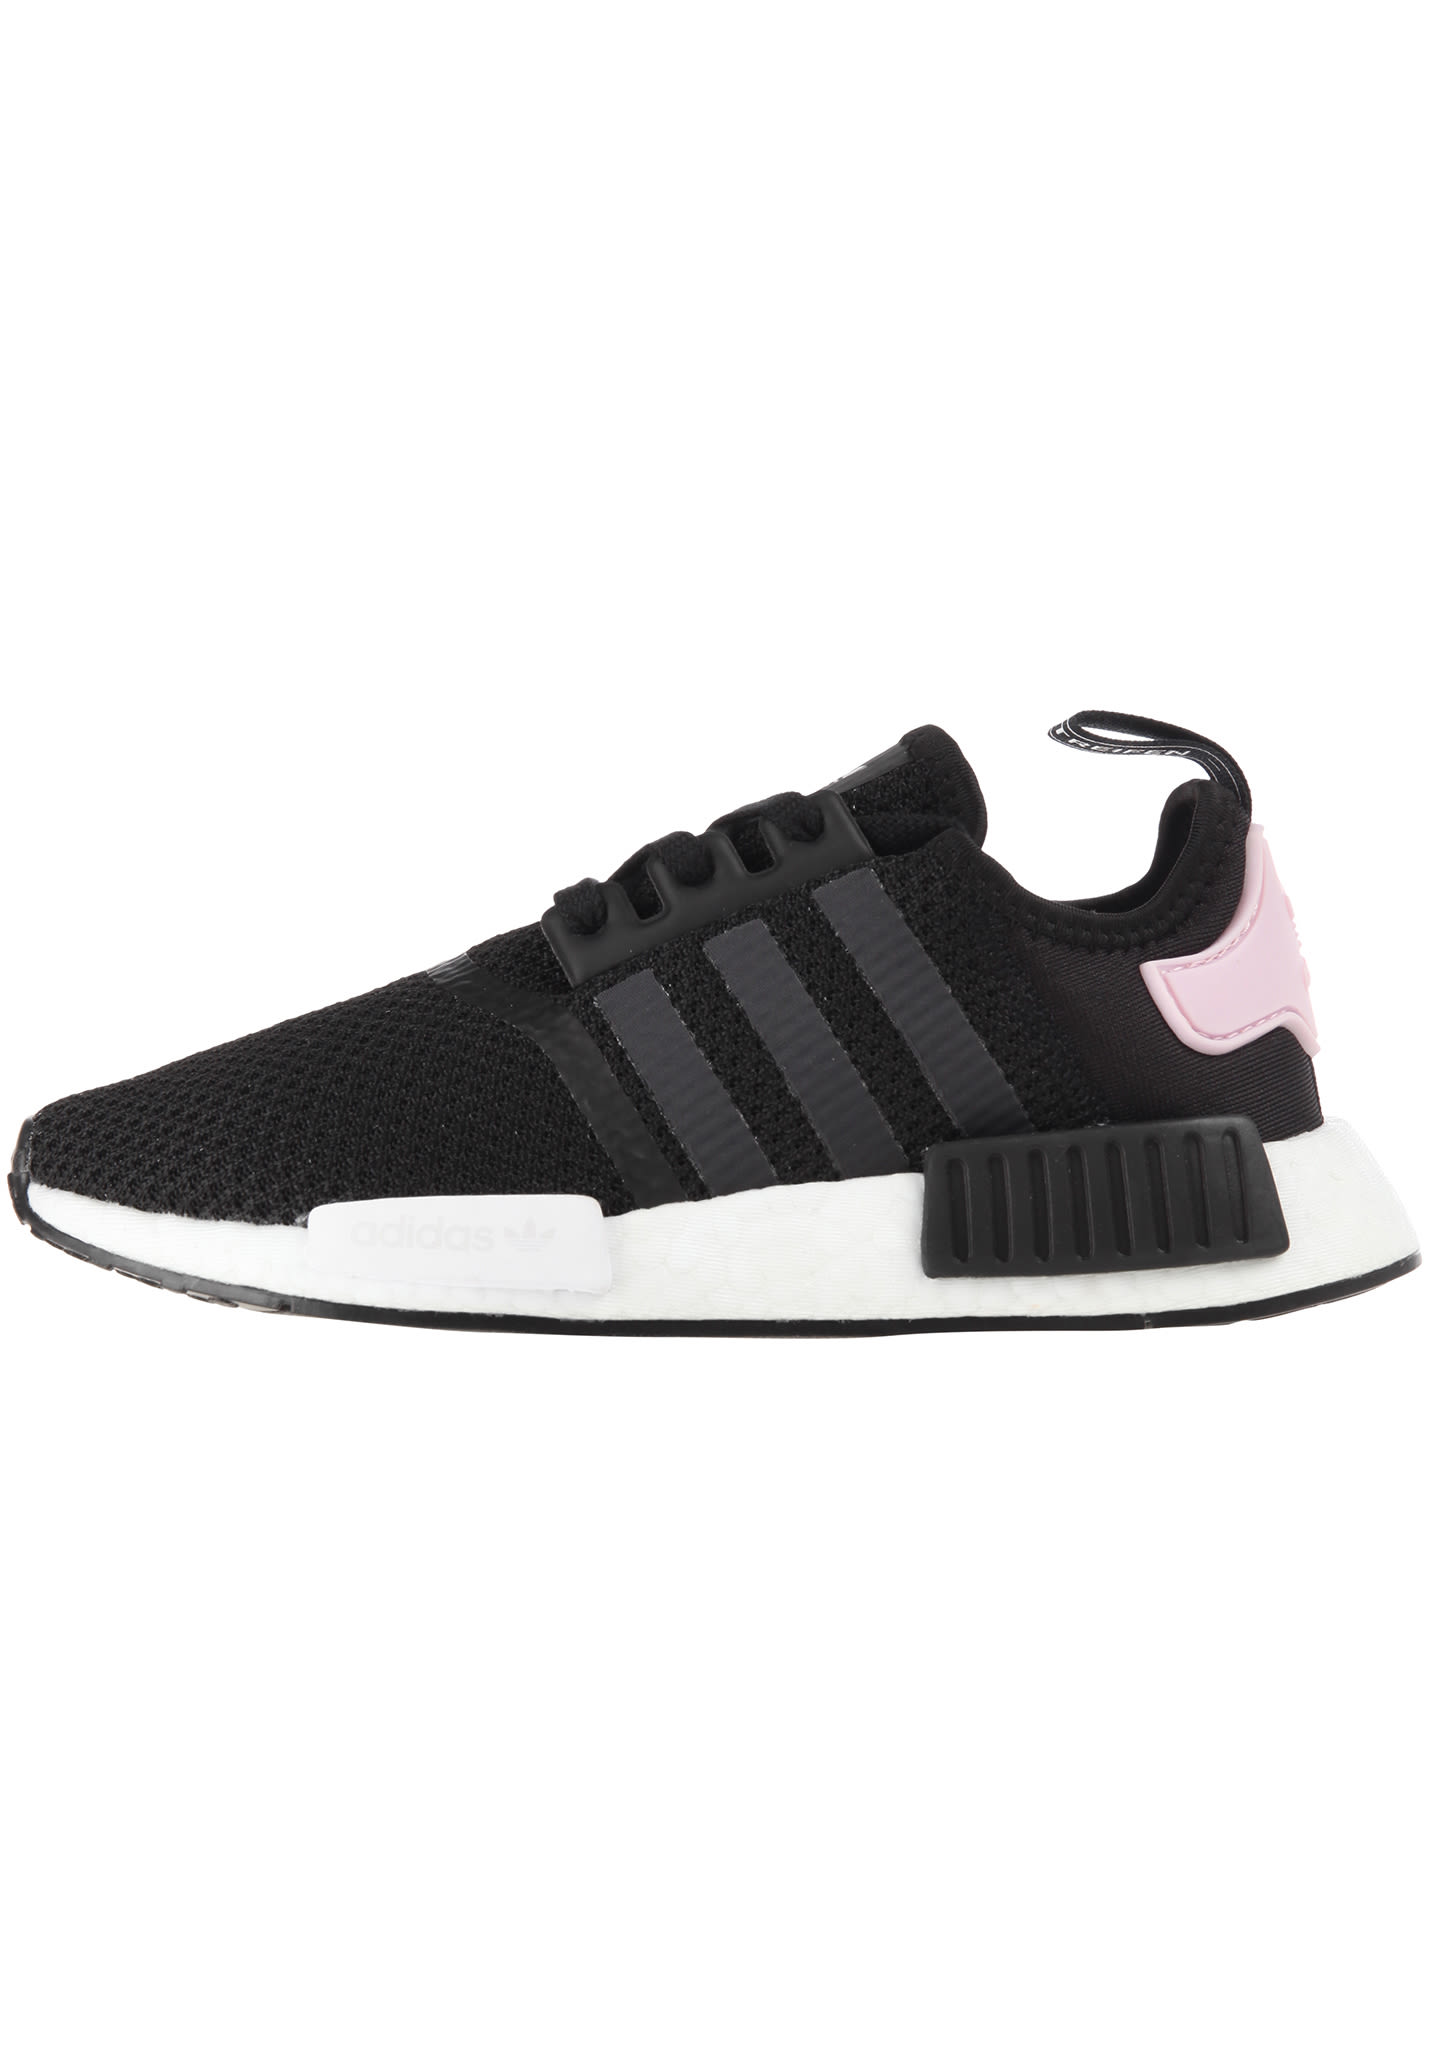 ebd6dee0a4765 ADIDAS ORIGINALS NMD R1 - Sneakers for Women - Black - Planet Sports